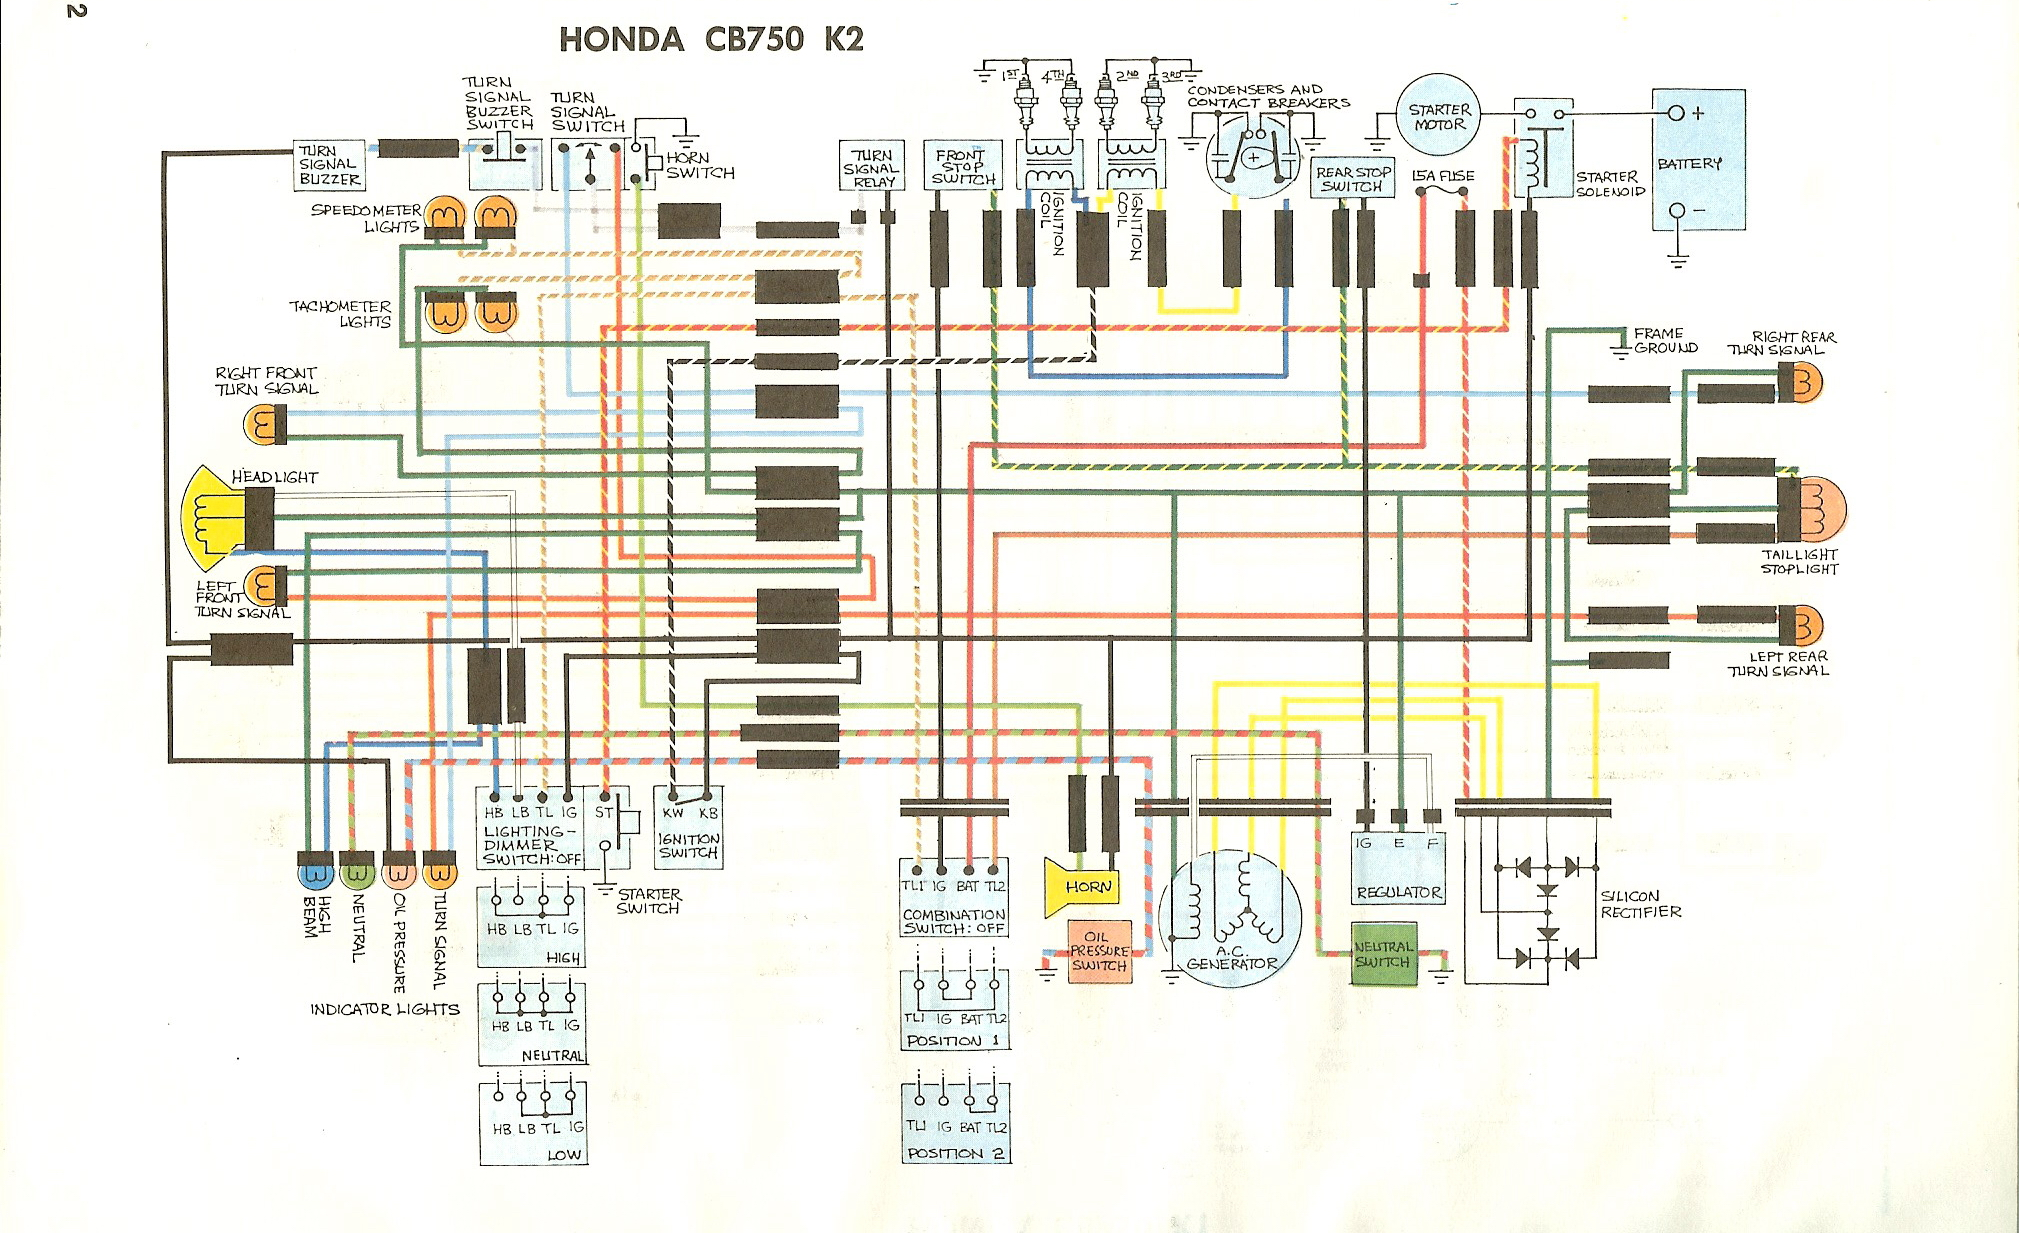 WD750K2 76 honda cb550 simplified wiring diagram honda wiring diagram 1974 cb360 wiring diagram at aneh.co